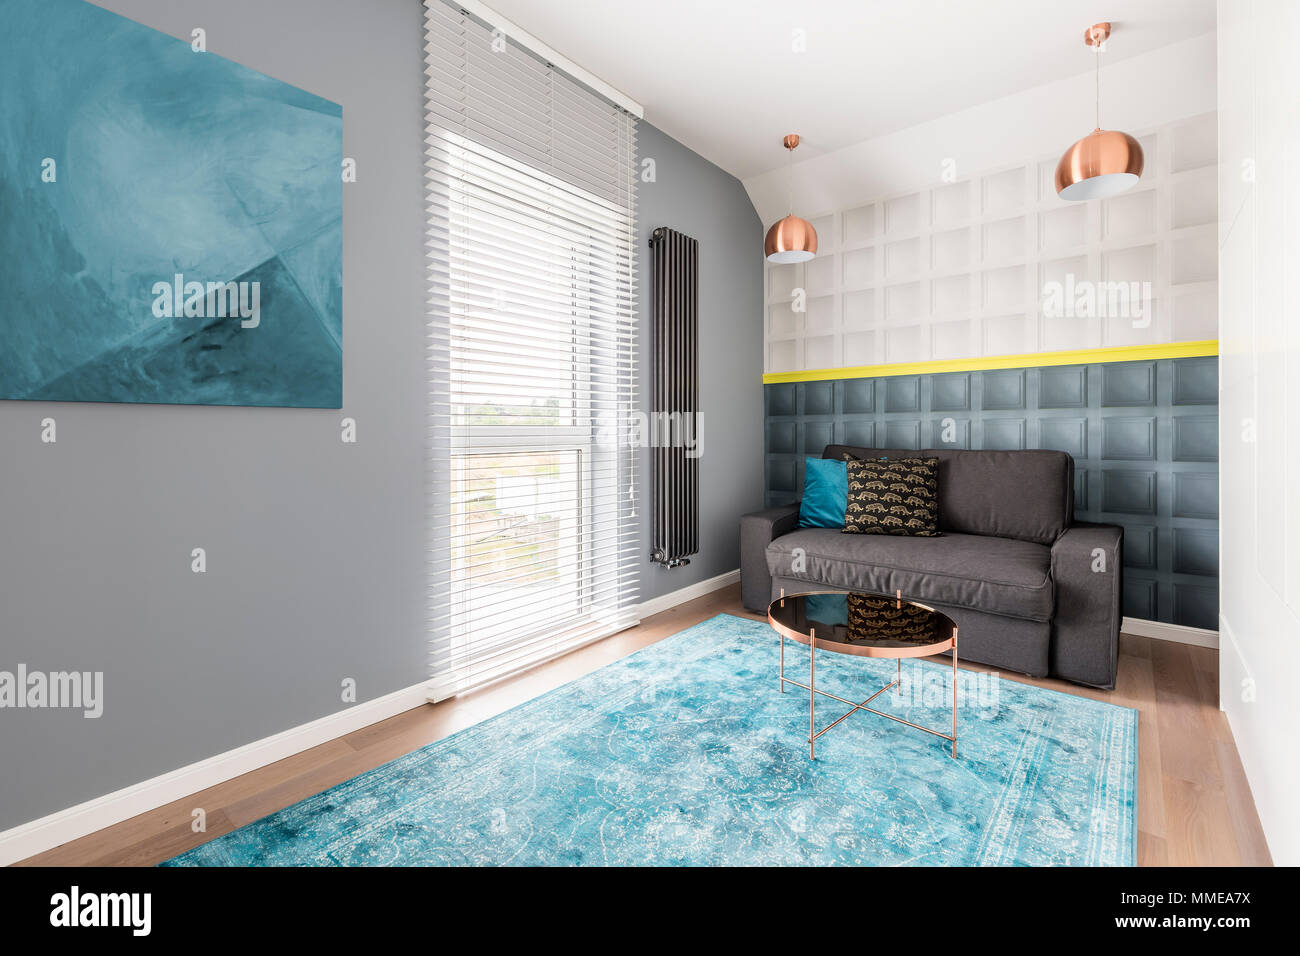 Image of: Contemporary Stylish Room With Gray Couch Blue Abstract Artwork Coffee Table Square Molding And Decorative Pillows Stock Photo Alamy